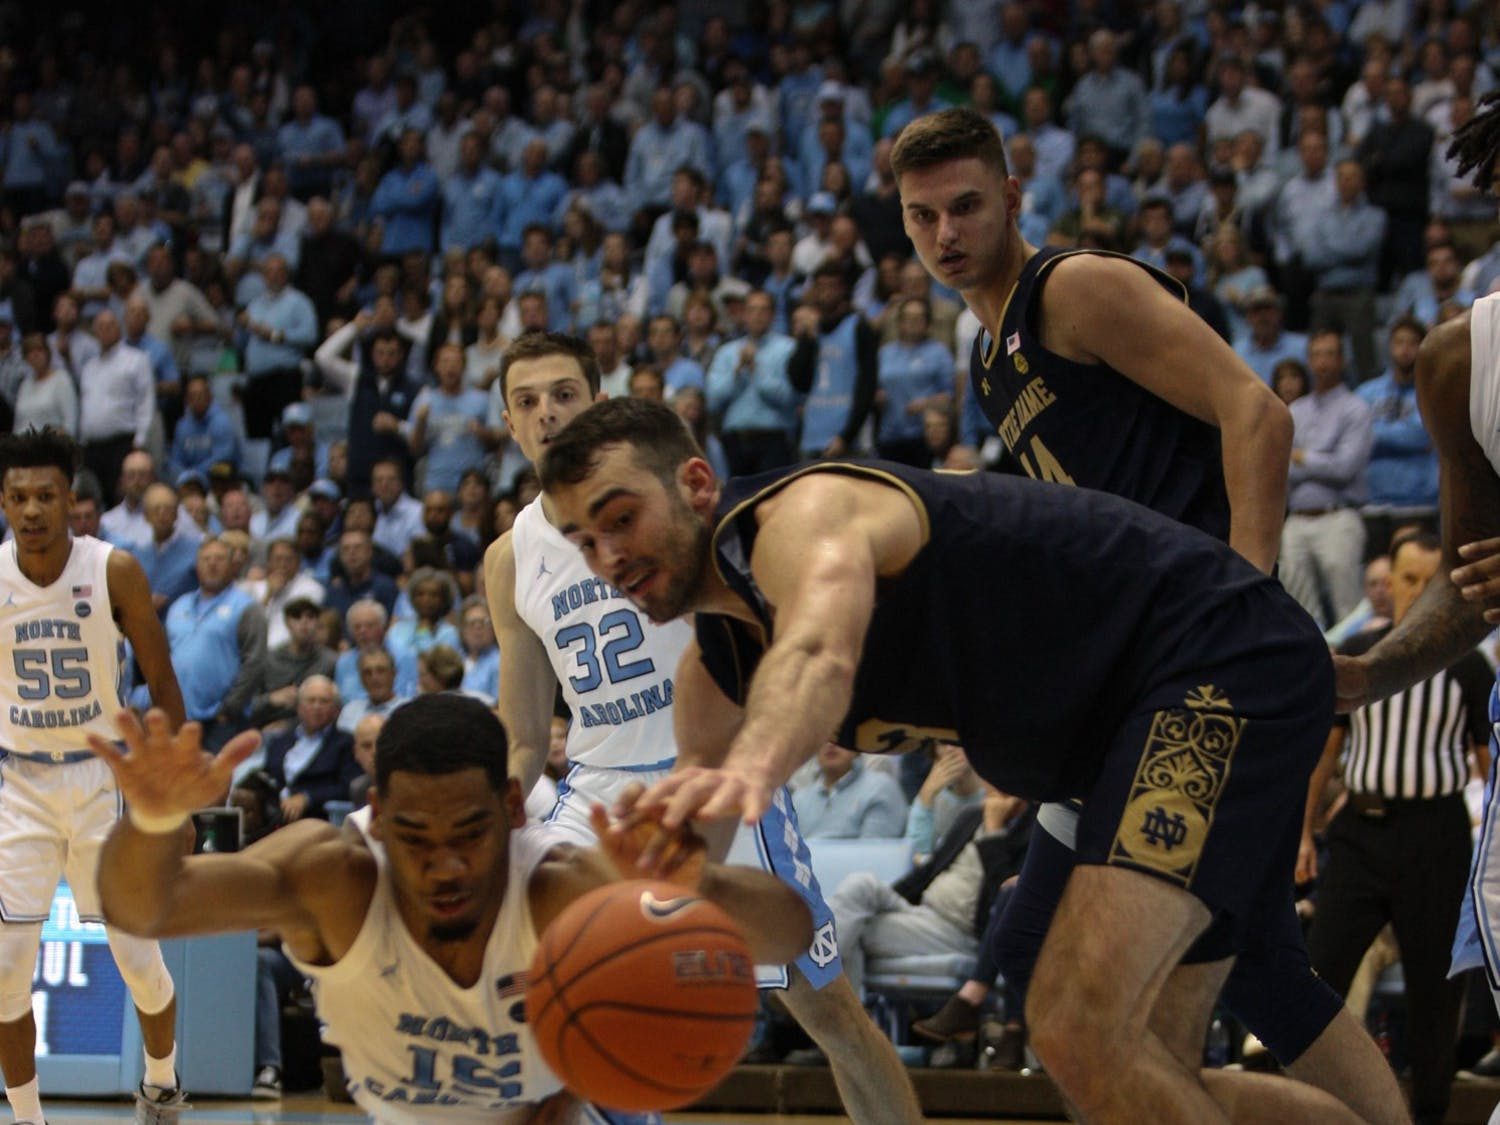 UNC forward Garrison Brooks (15) and Notre Dame forward John Mooney dive for the ball on Wednesday, Nov. 6, 2019 in the Dean E. Smith Center. The Tar Heels beat the Fighting Irish 76-65.